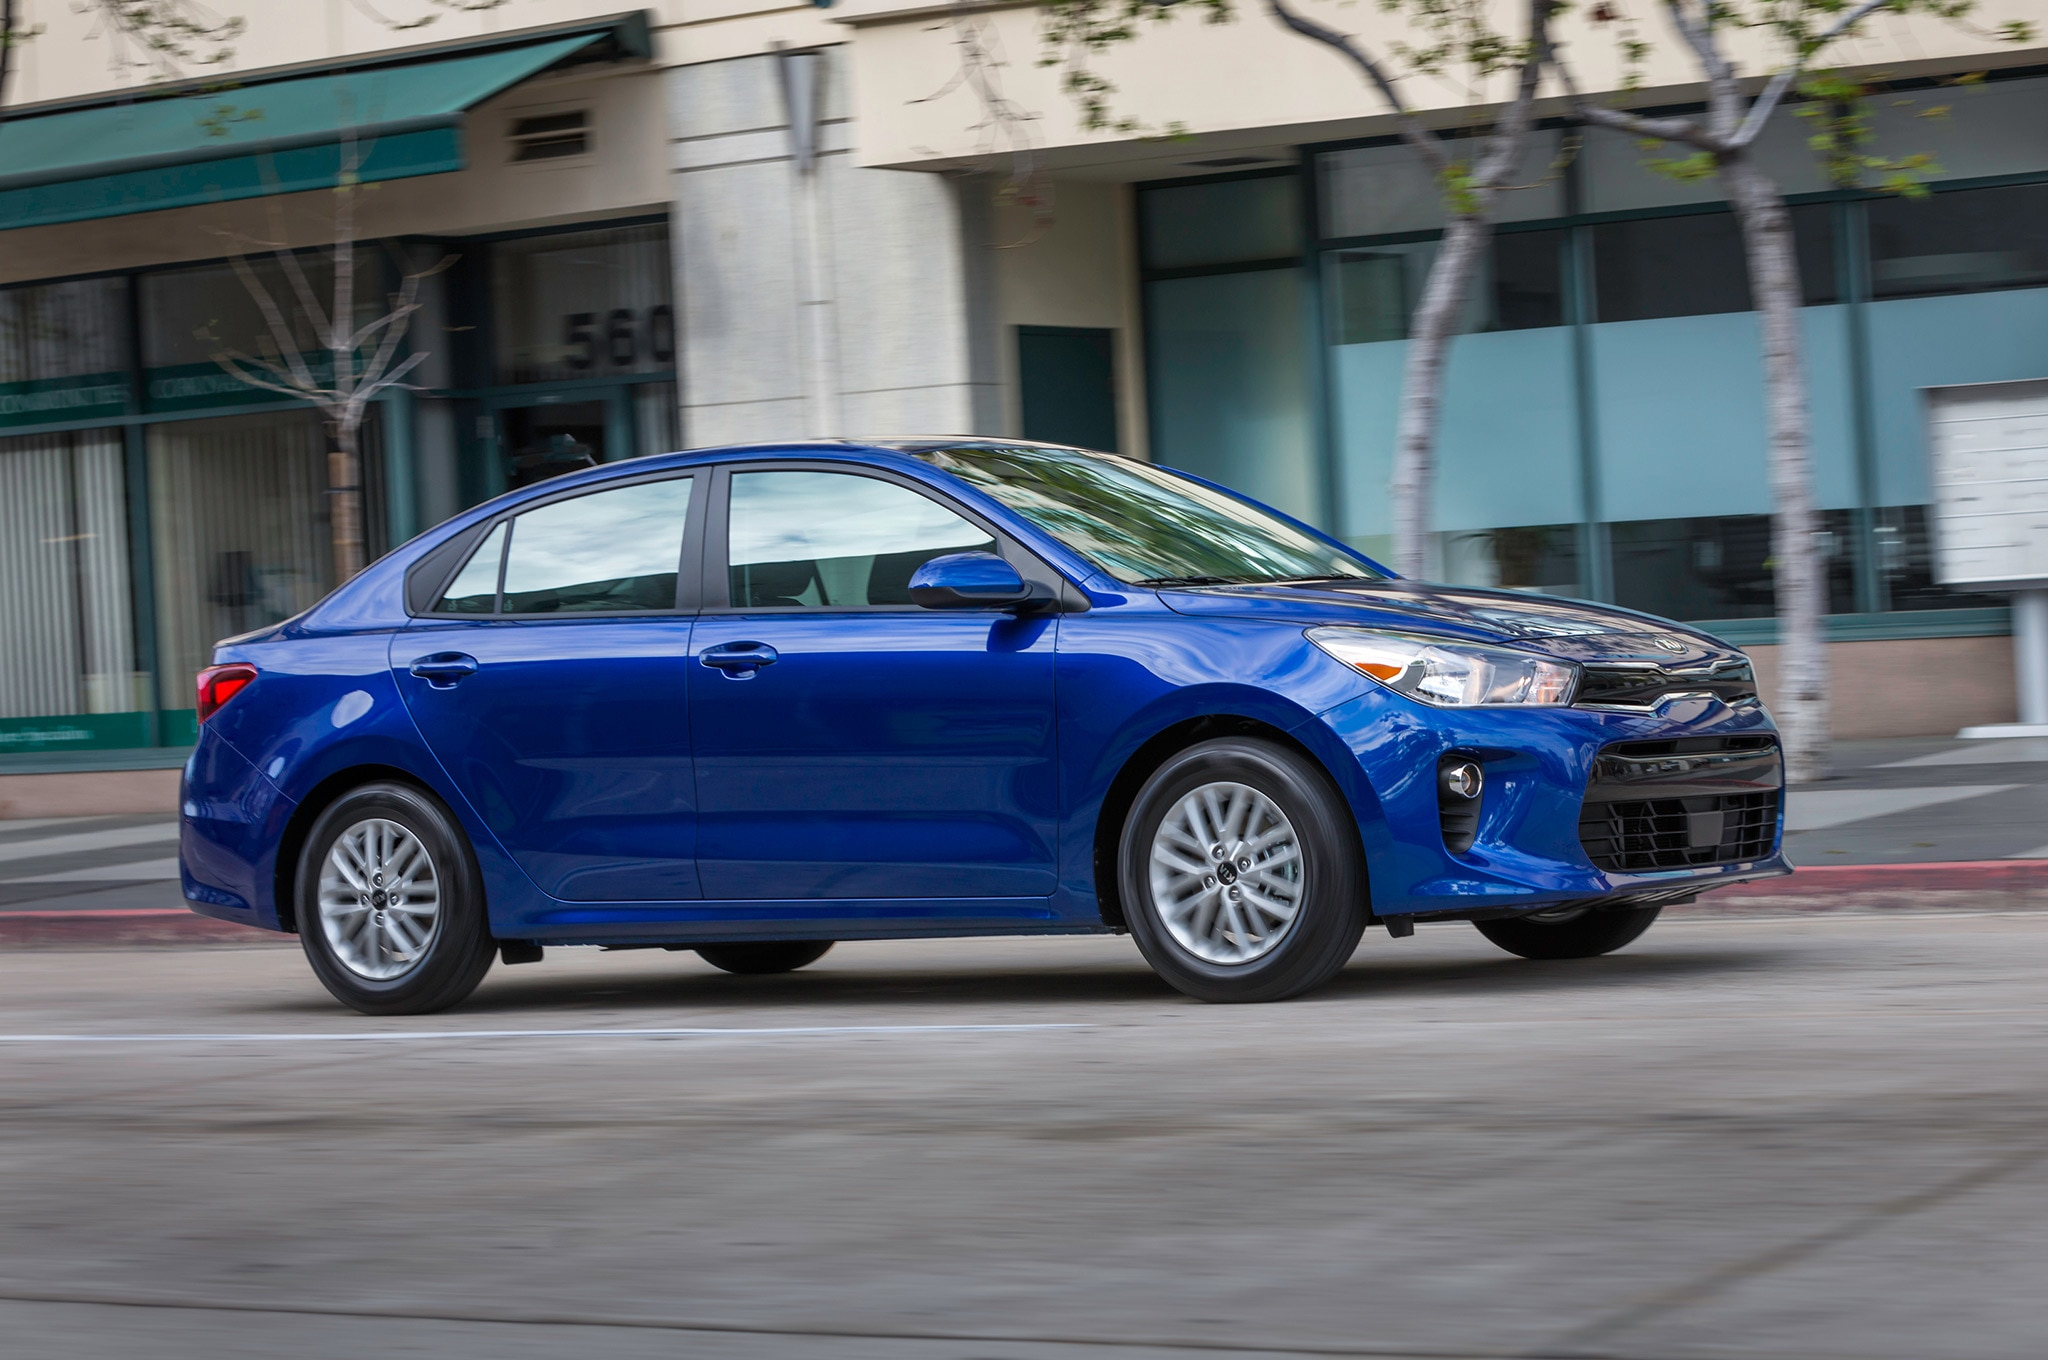 2018 Kia Rio Sedan And Hatchback Reloaded For New York Show